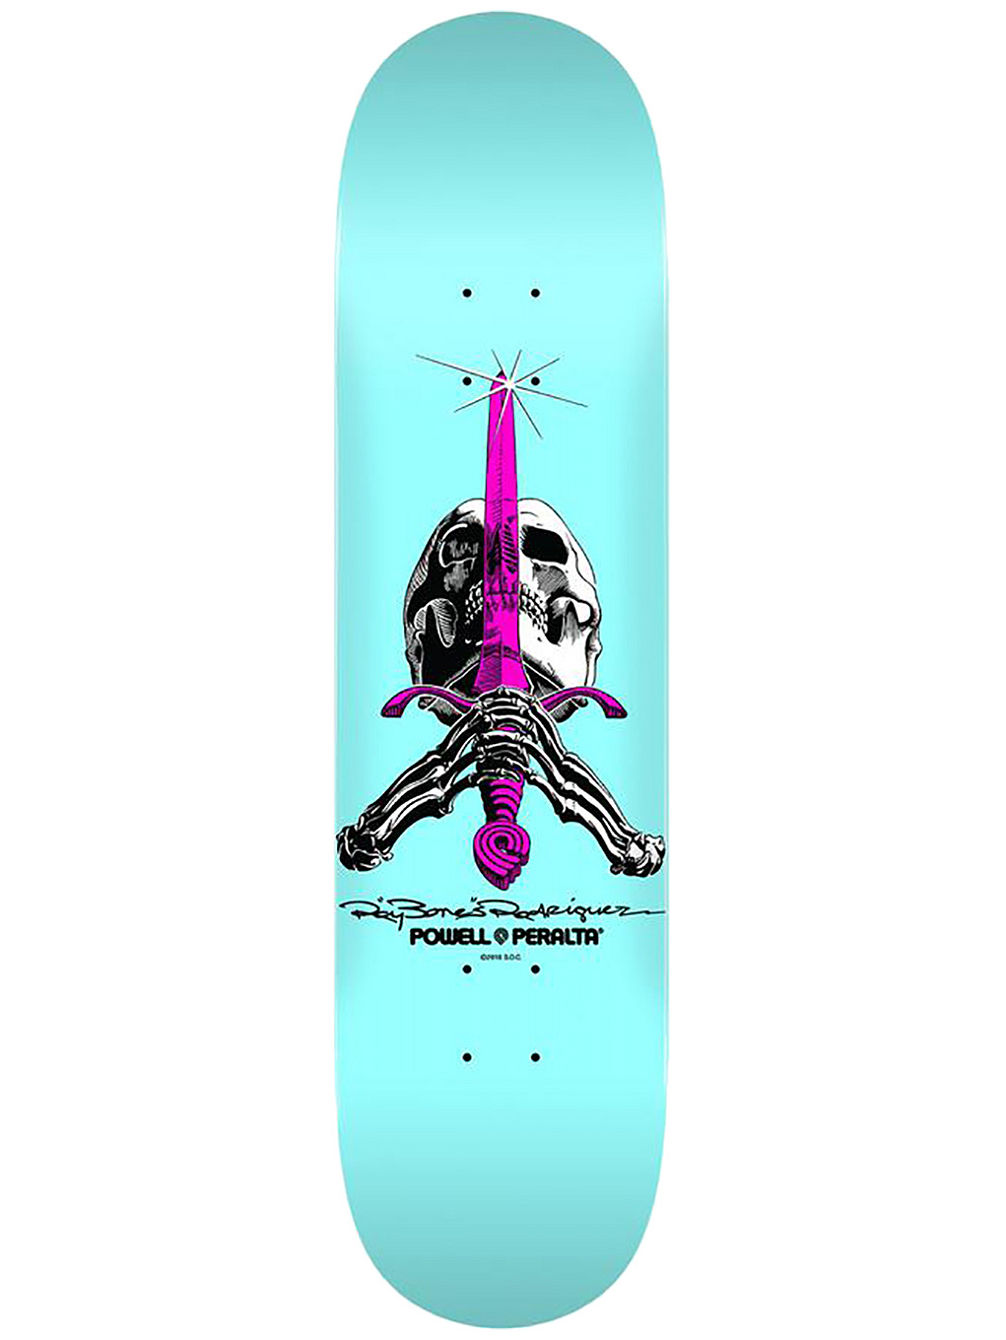 "Skull&Sword Pastel Pop 8.0"" Skateboard Deck"